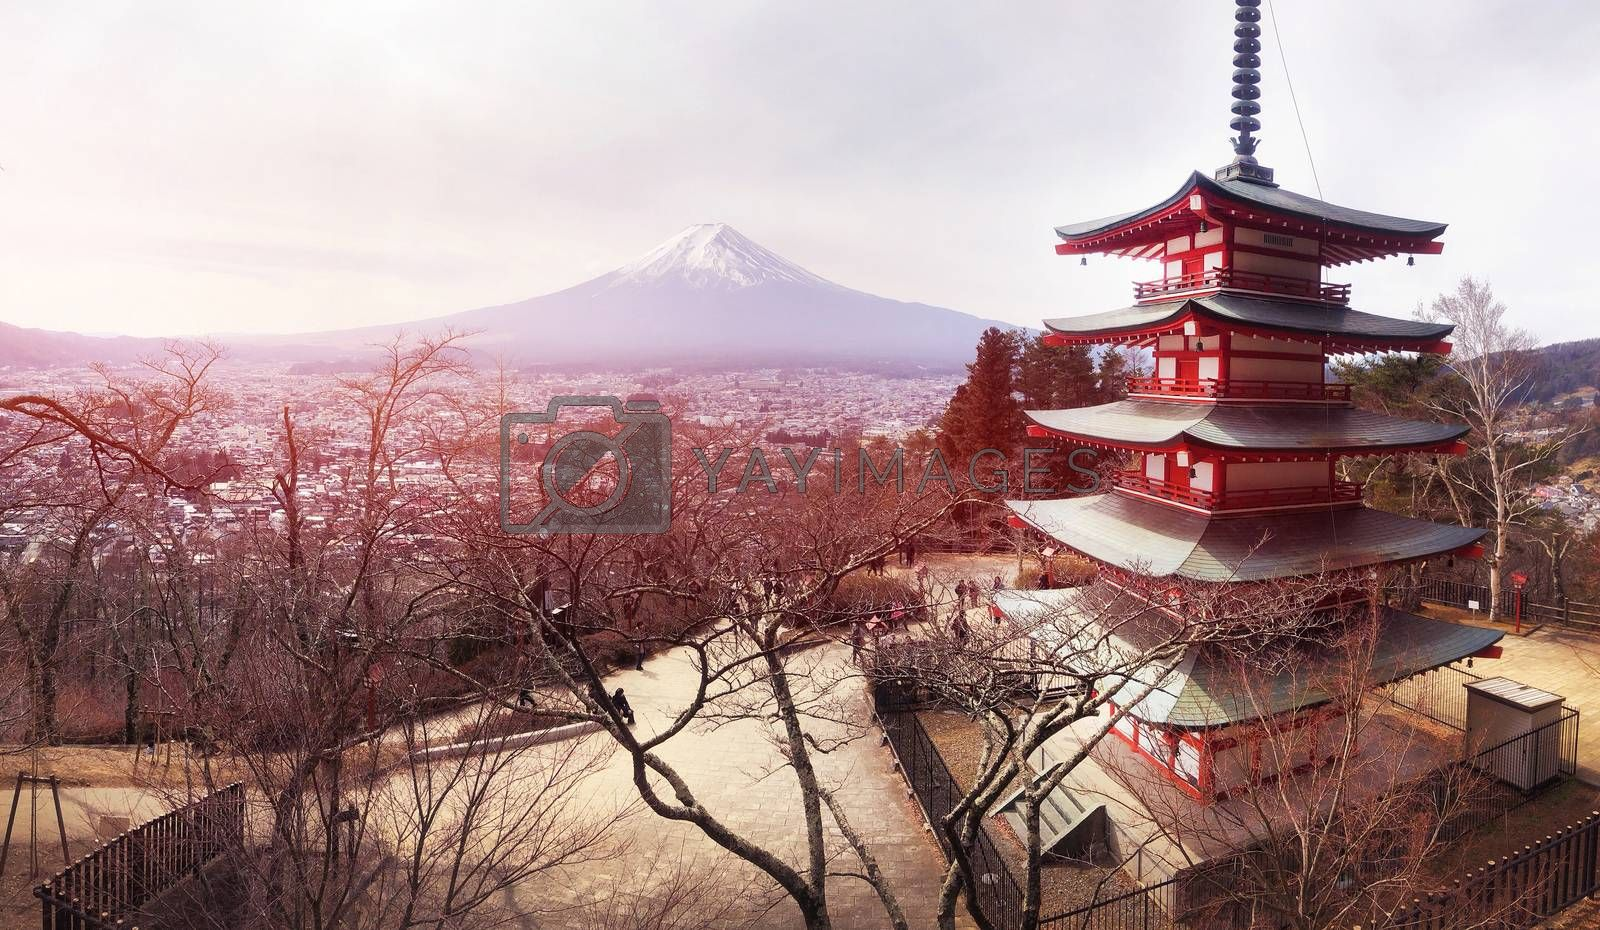 Panoramic view of Red Chureito Pagoda and Snow covered Mount Fuji  in Shimoyoshida - Arakurayama Sengen Park in Fujiyoshida near Kawaguchigo